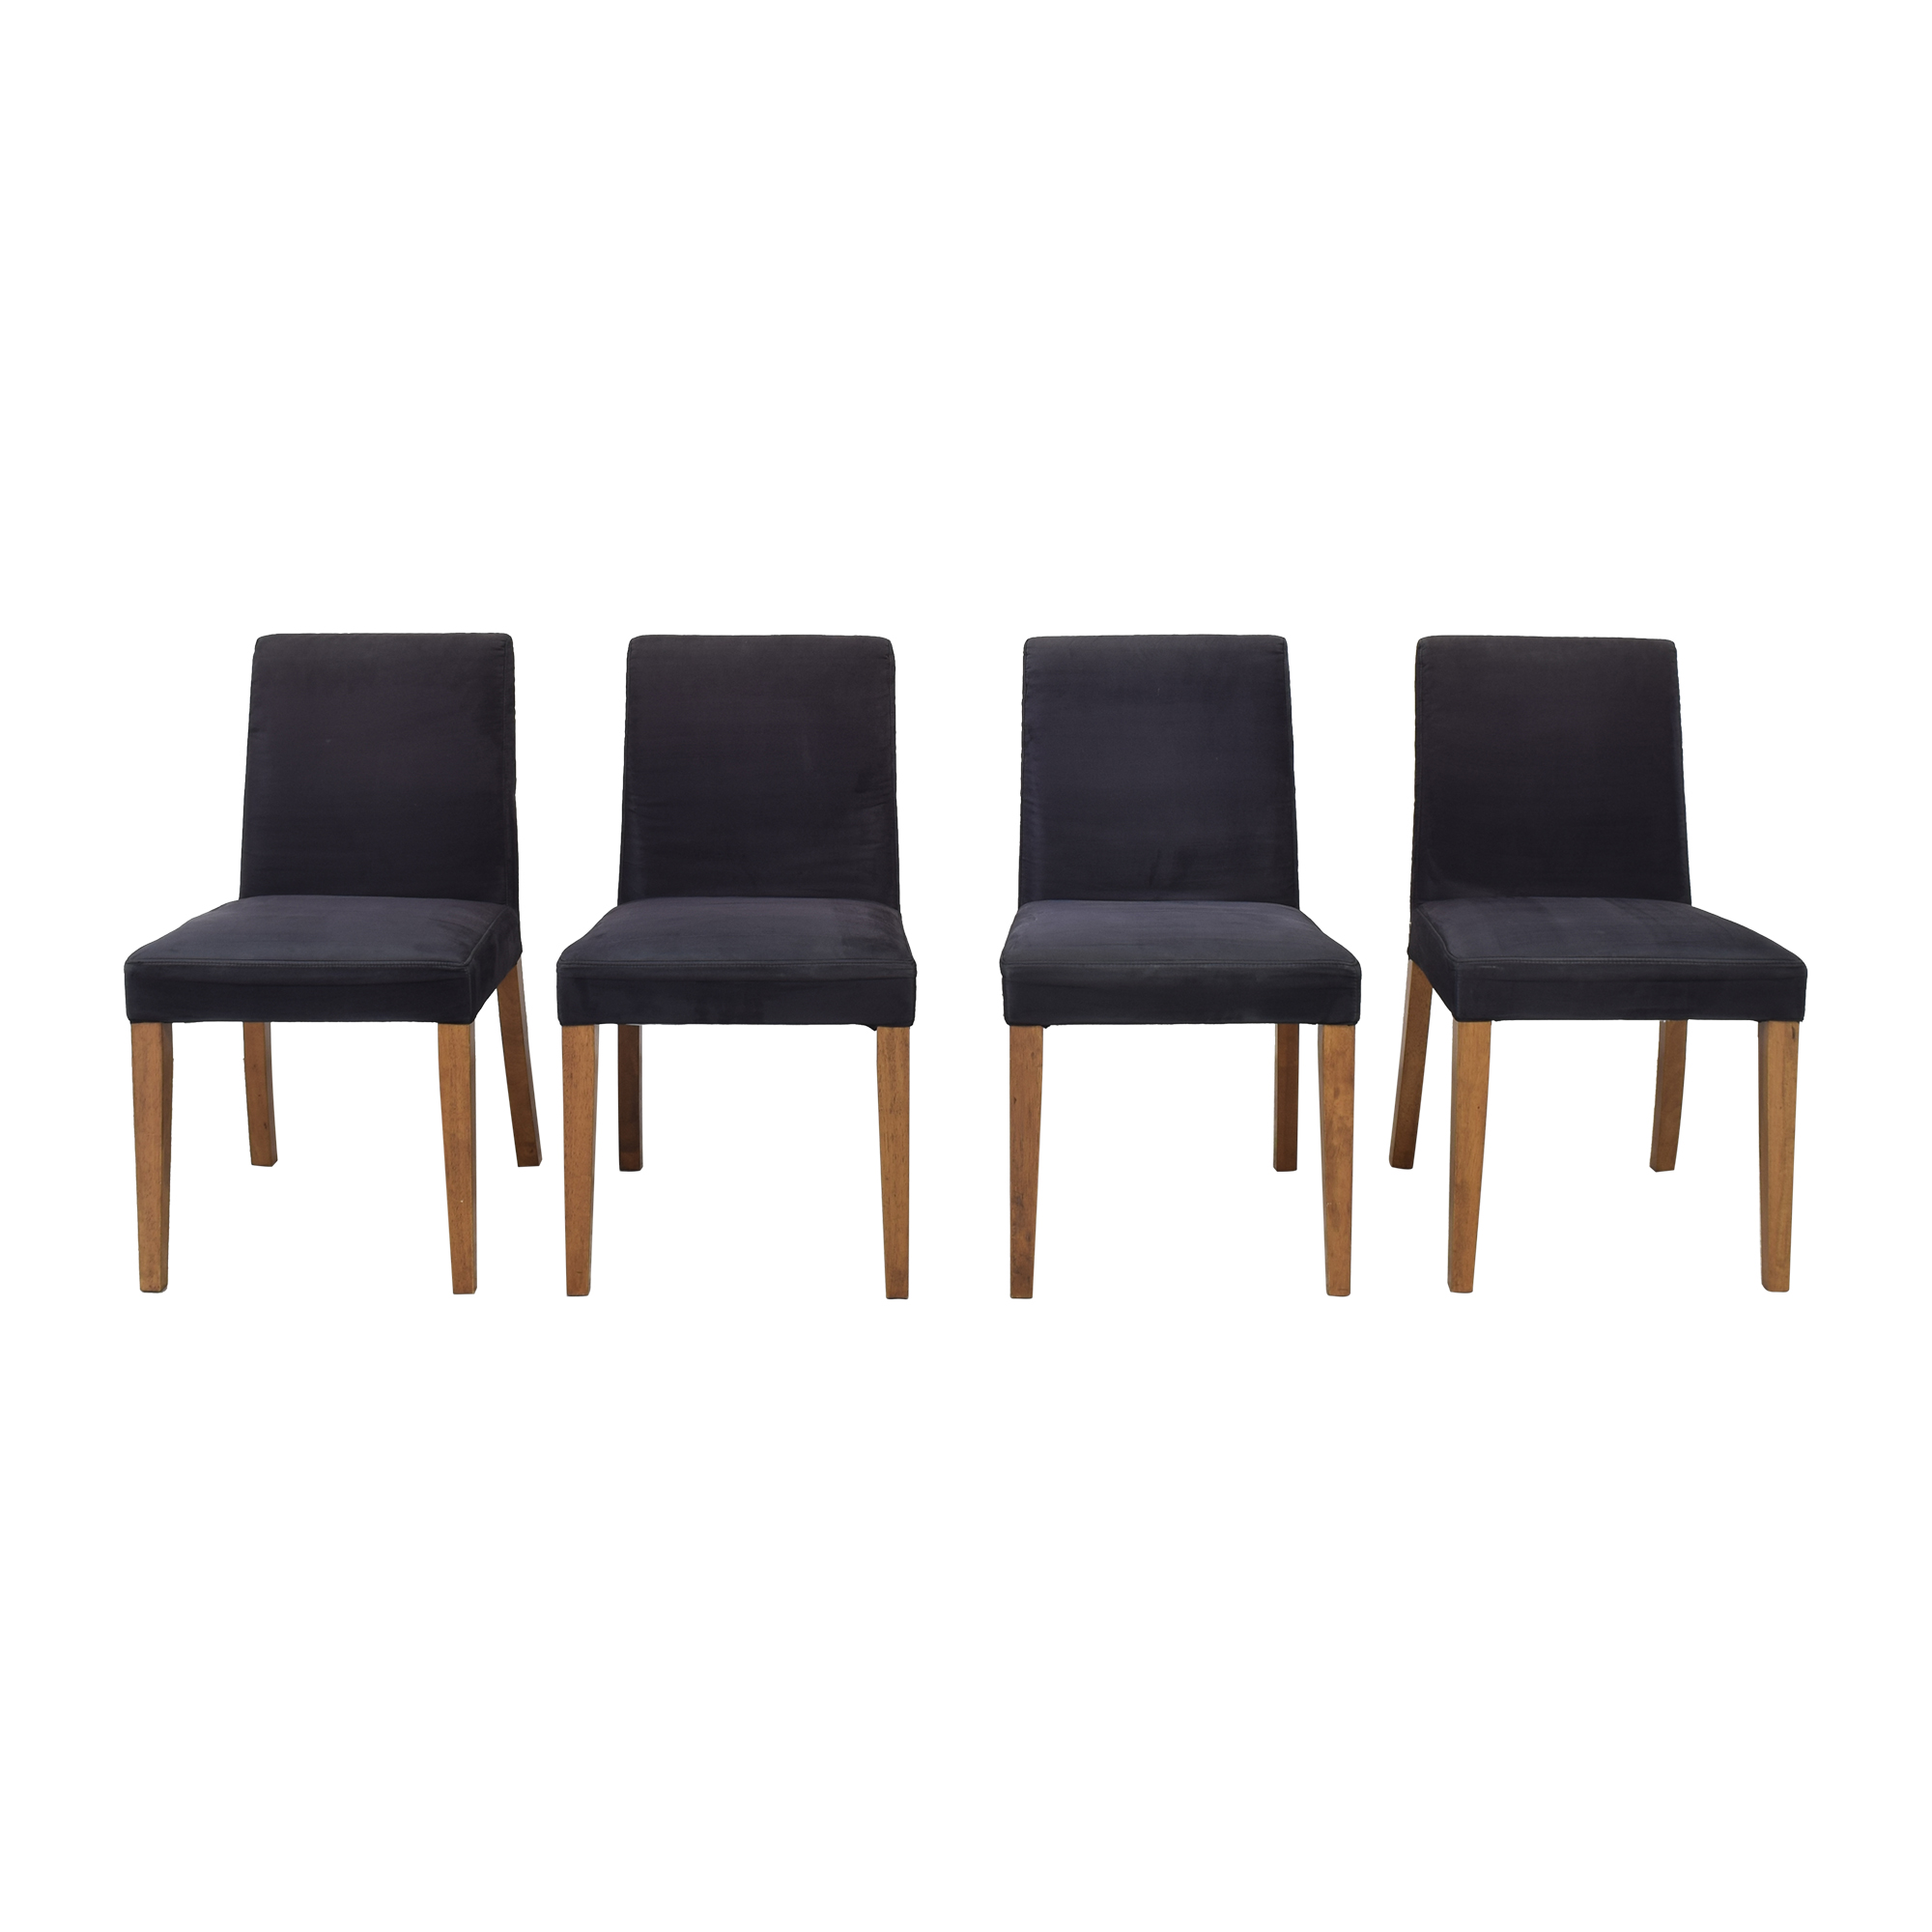 BoConcept Cantono Upholstered Chairs BoConcept